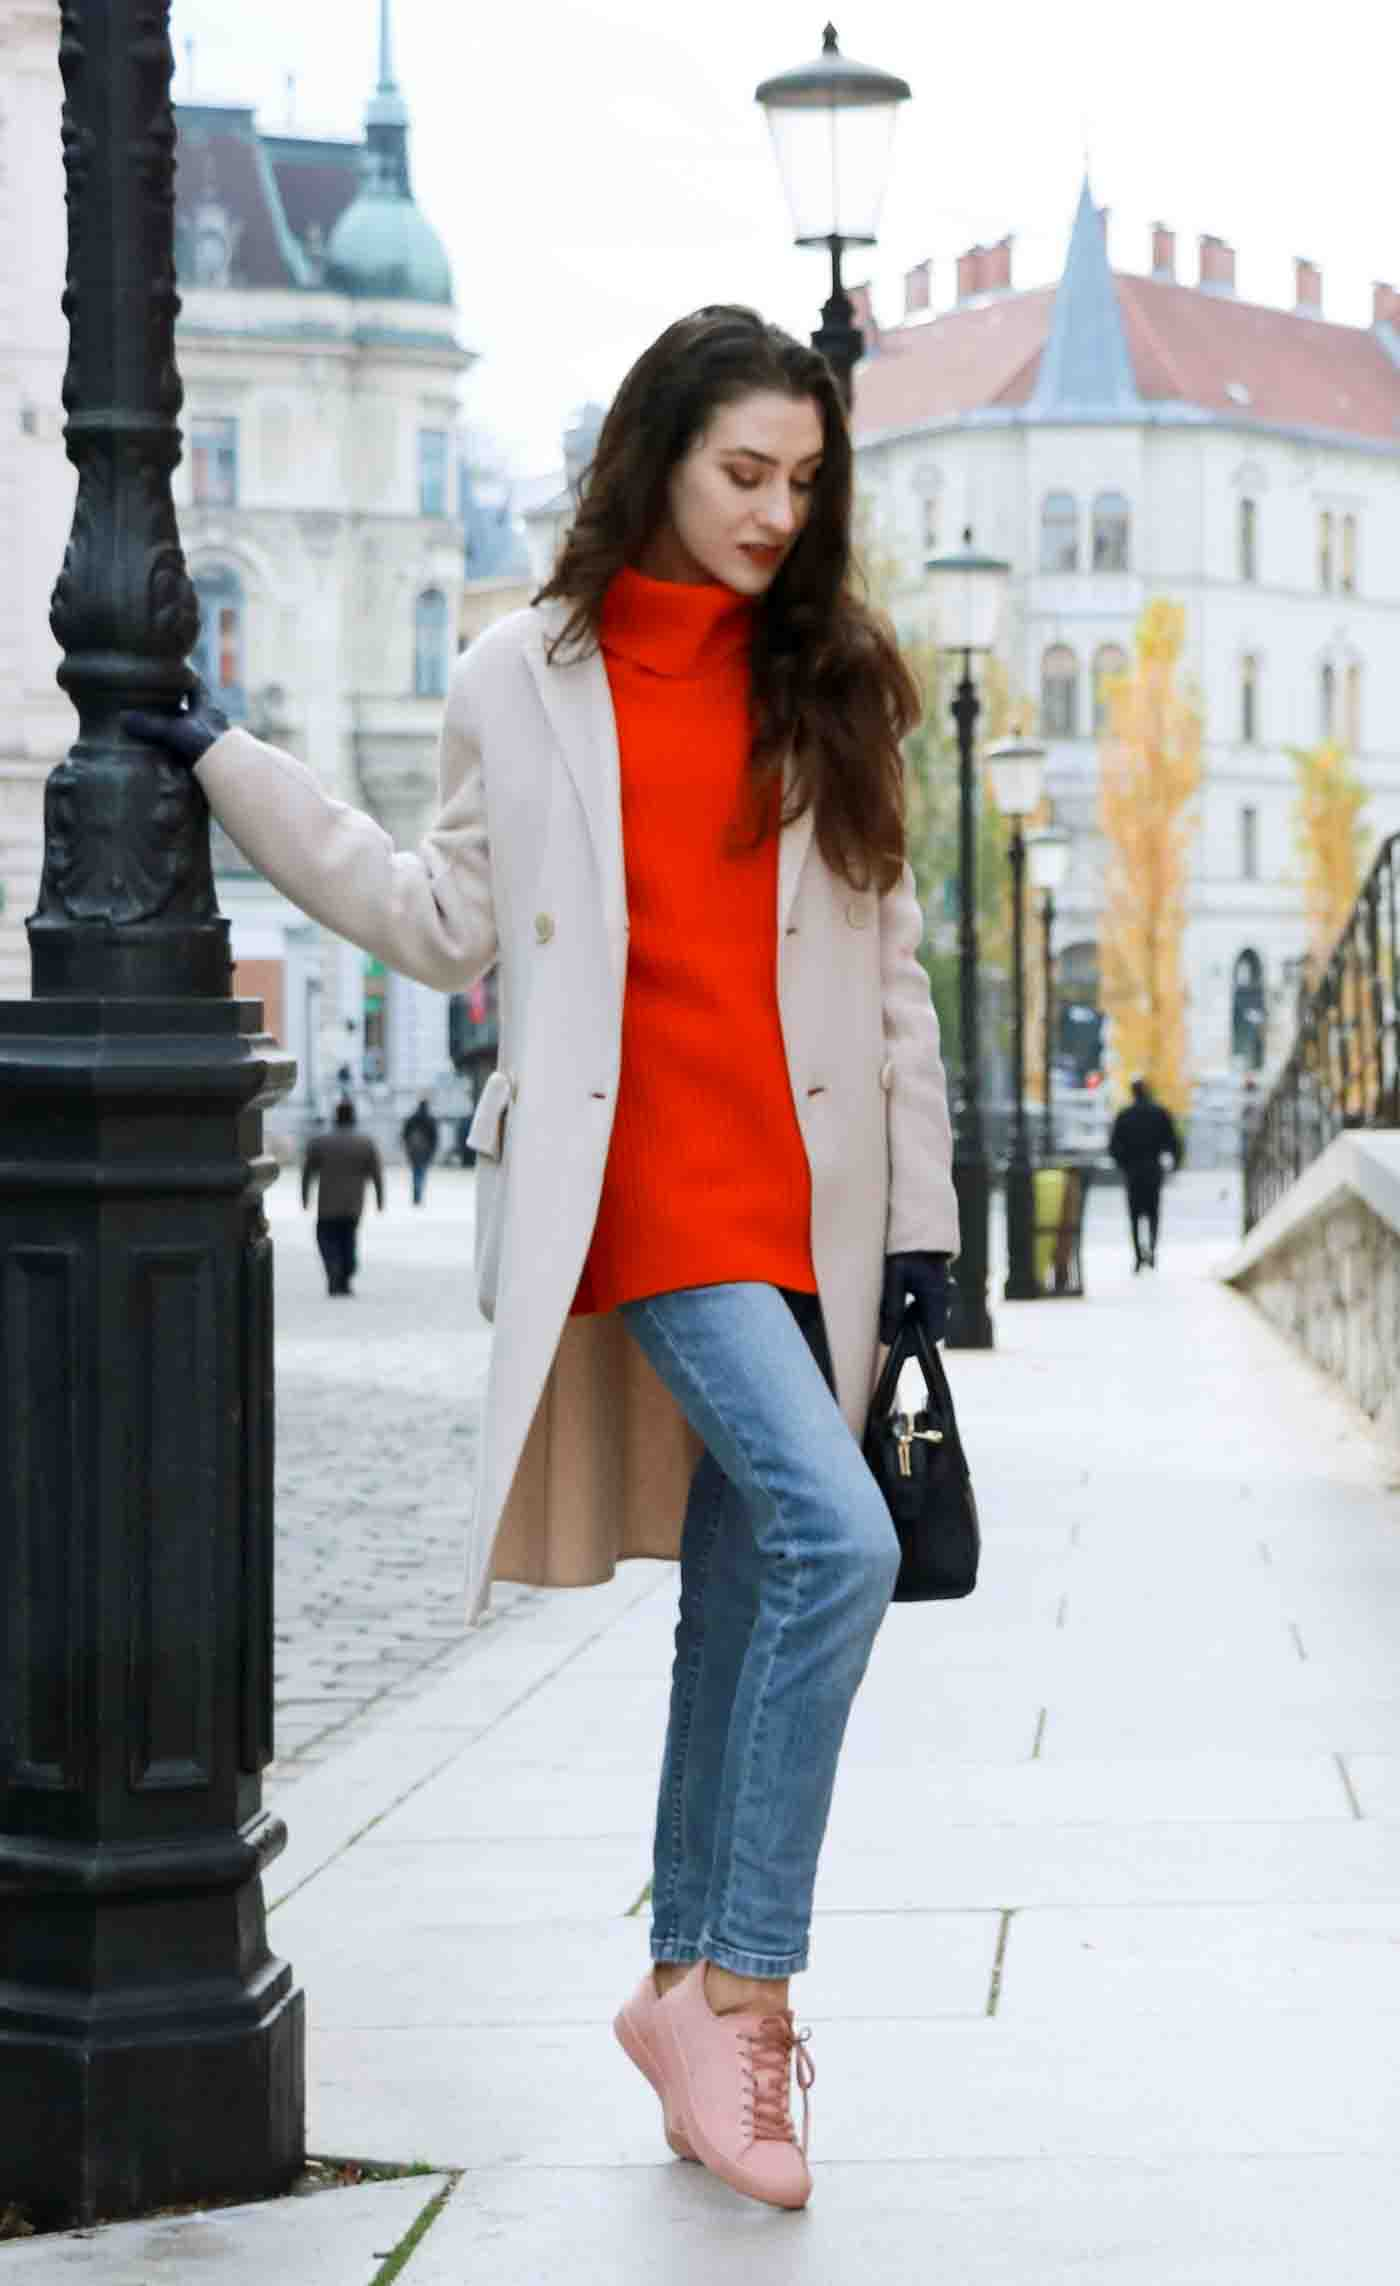 Fashion Blogger Veronika Lipar of Brunette from Wall dressed in red Ganni turtleneck sweater, light blue jeans, pink Puma sneakers and Weekend Max Mara white princess coat